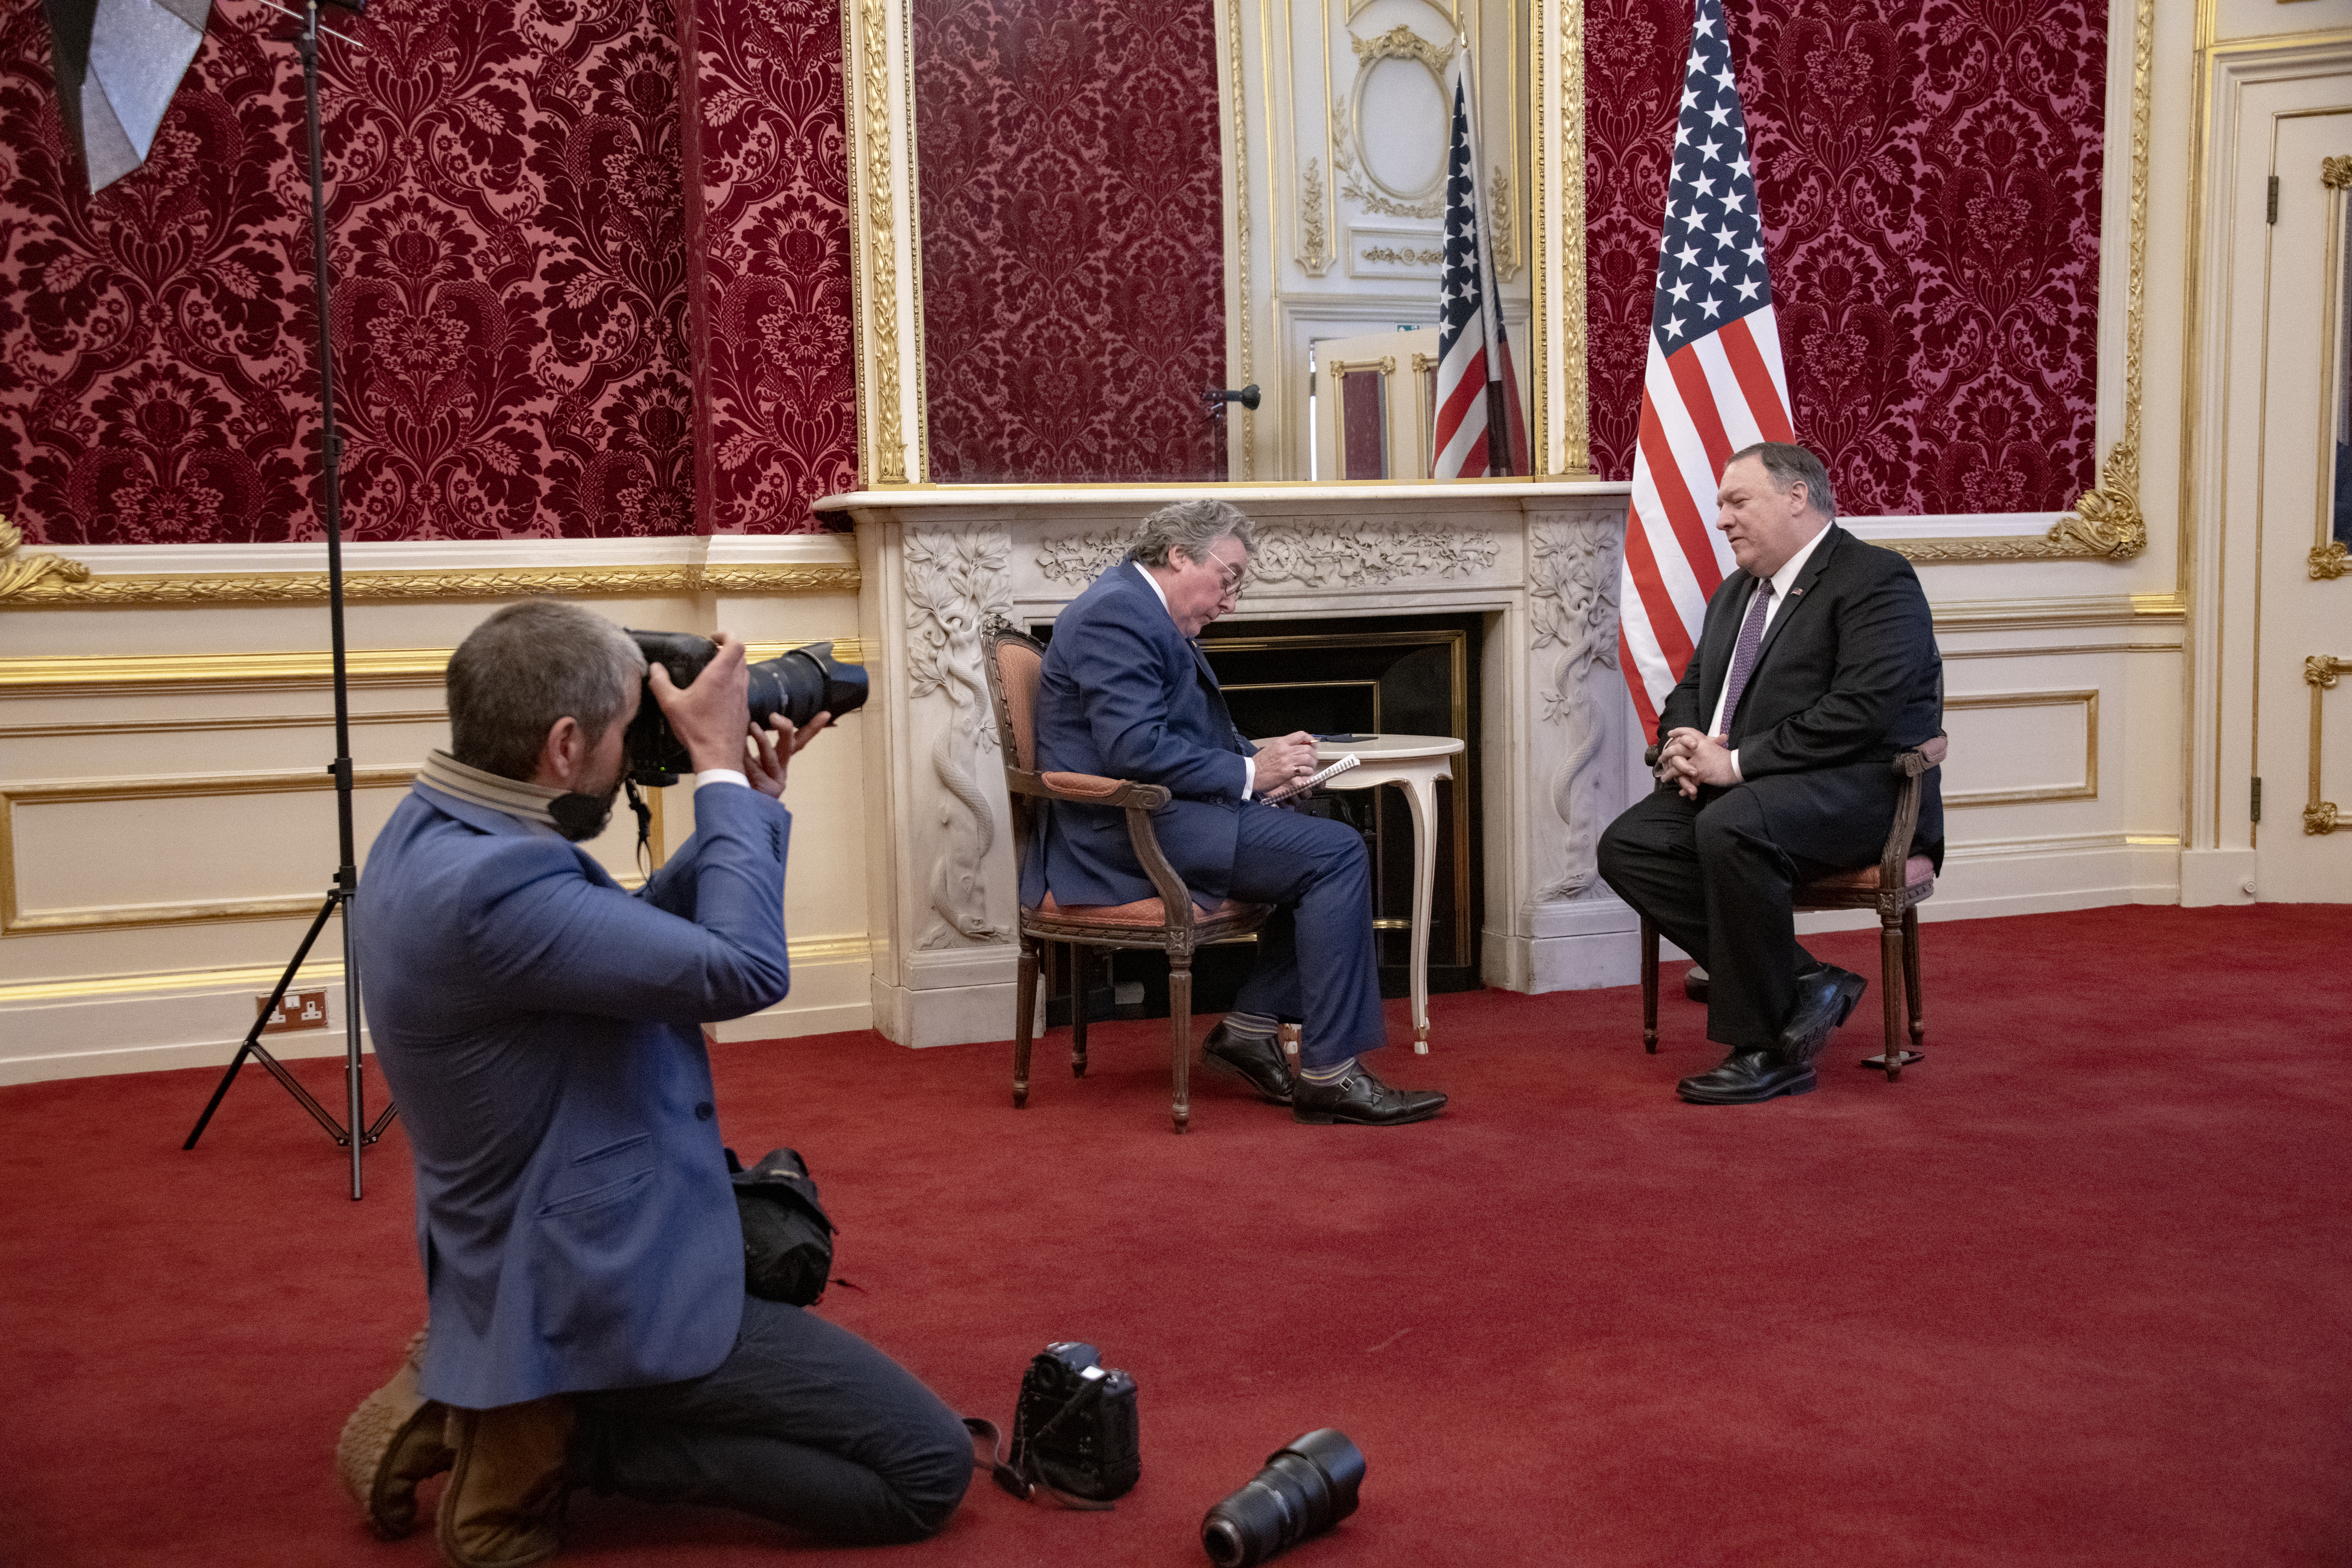 Coughlin interviewing [[Mike Pompeo